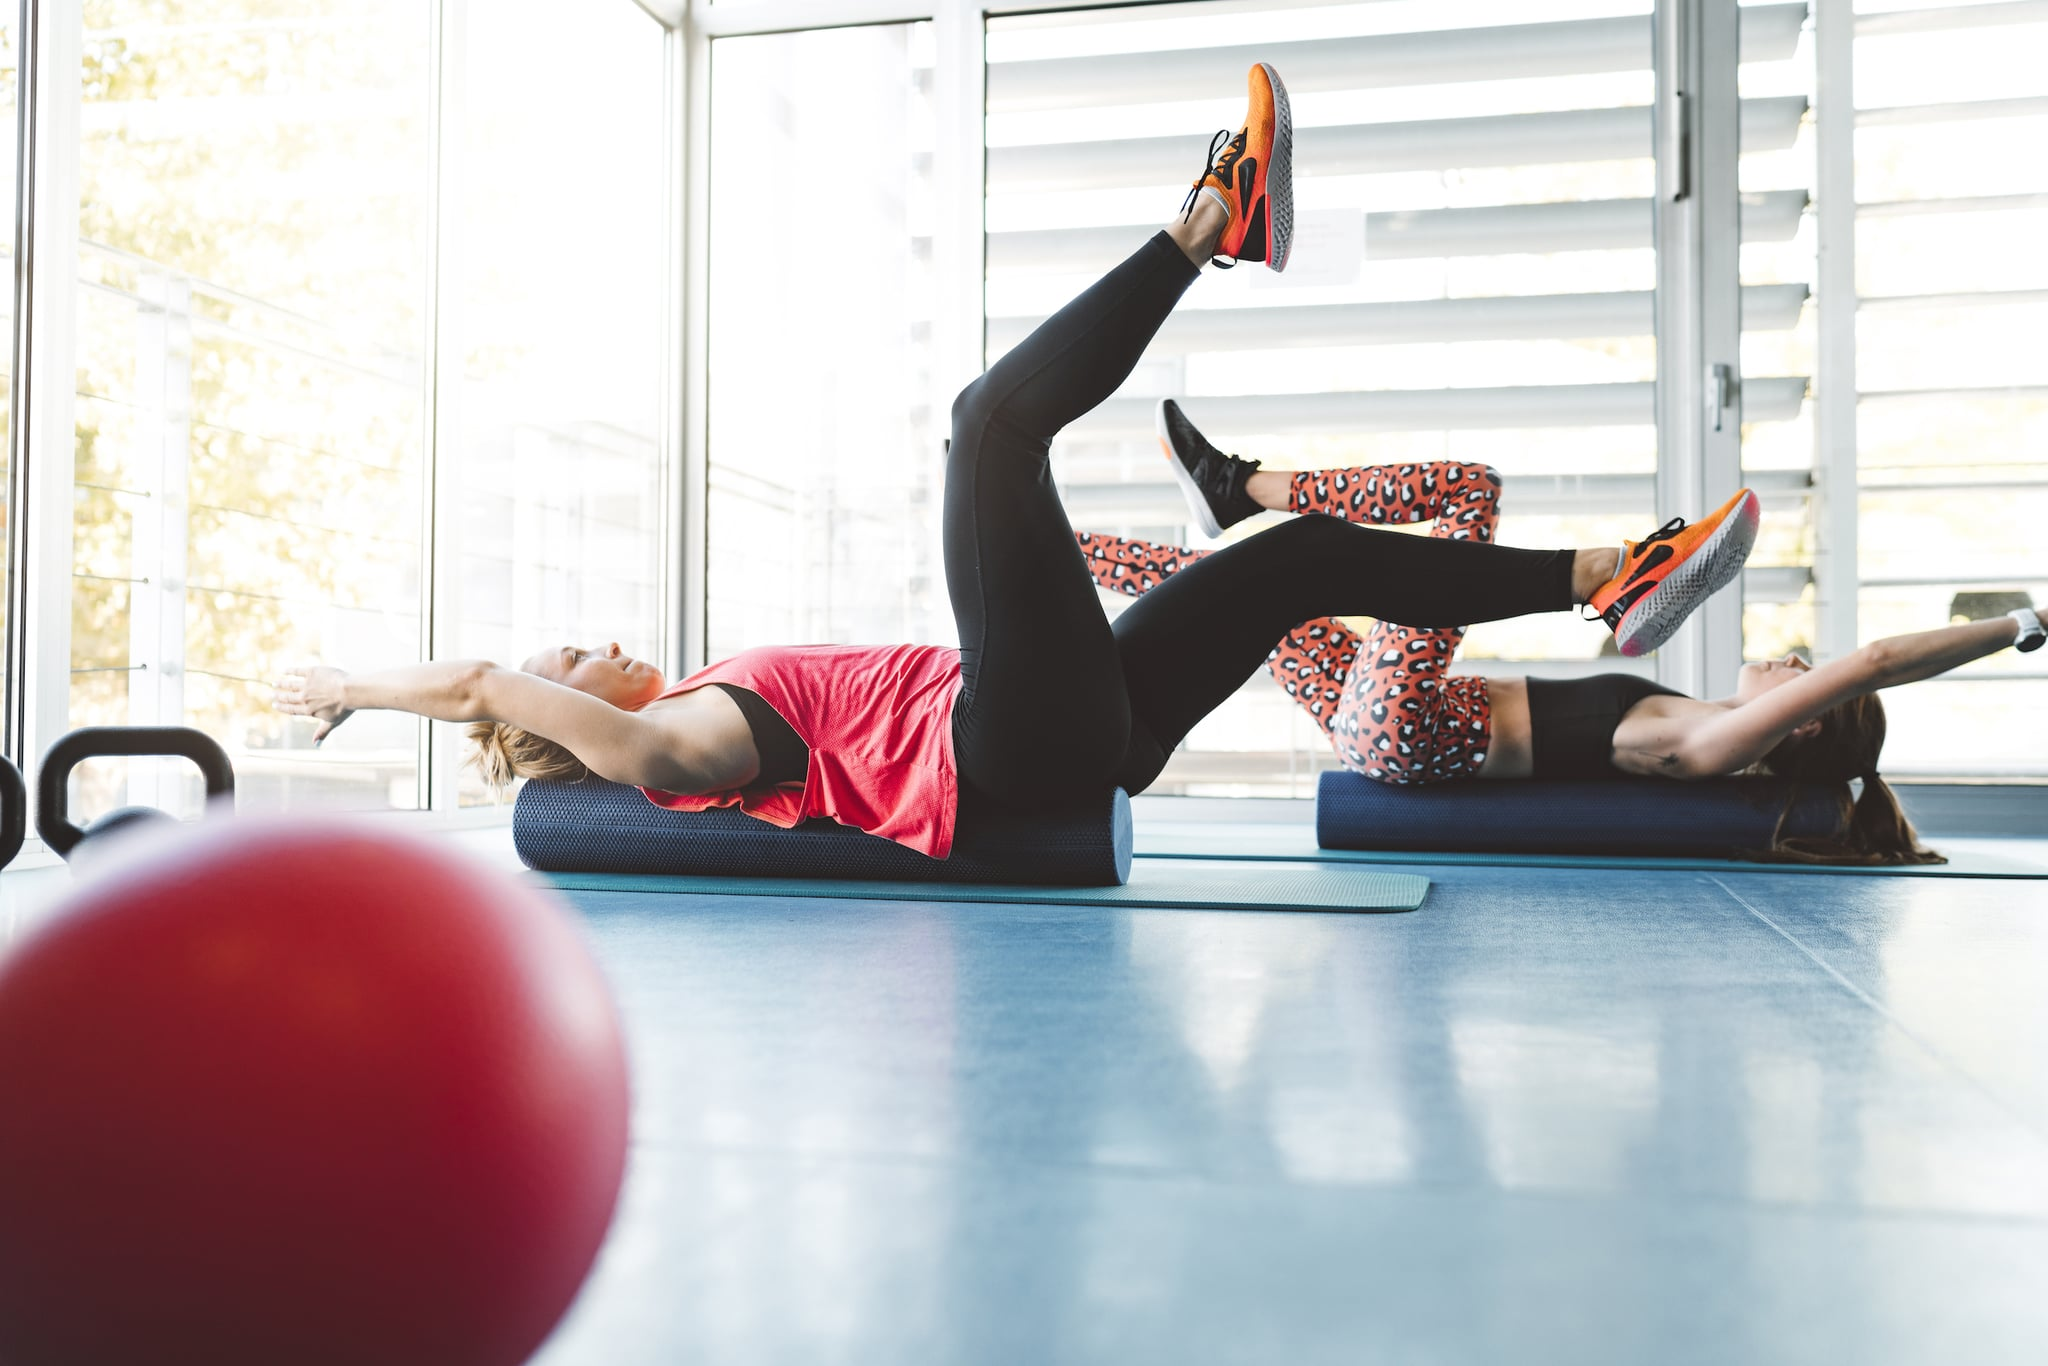 Two young fitness woman athletes doing a dead bug exercise on a foam roller, to work on their core muscles and stability.